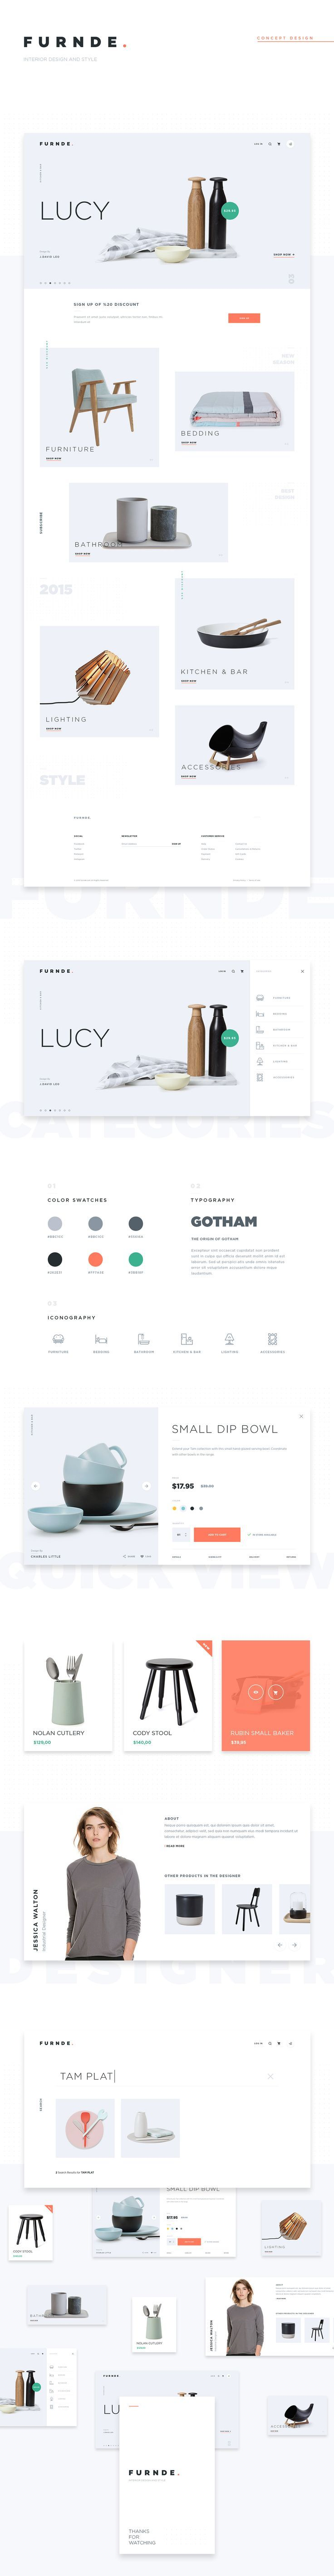 Gallery: Modern & Trendy Web Designs | From up North